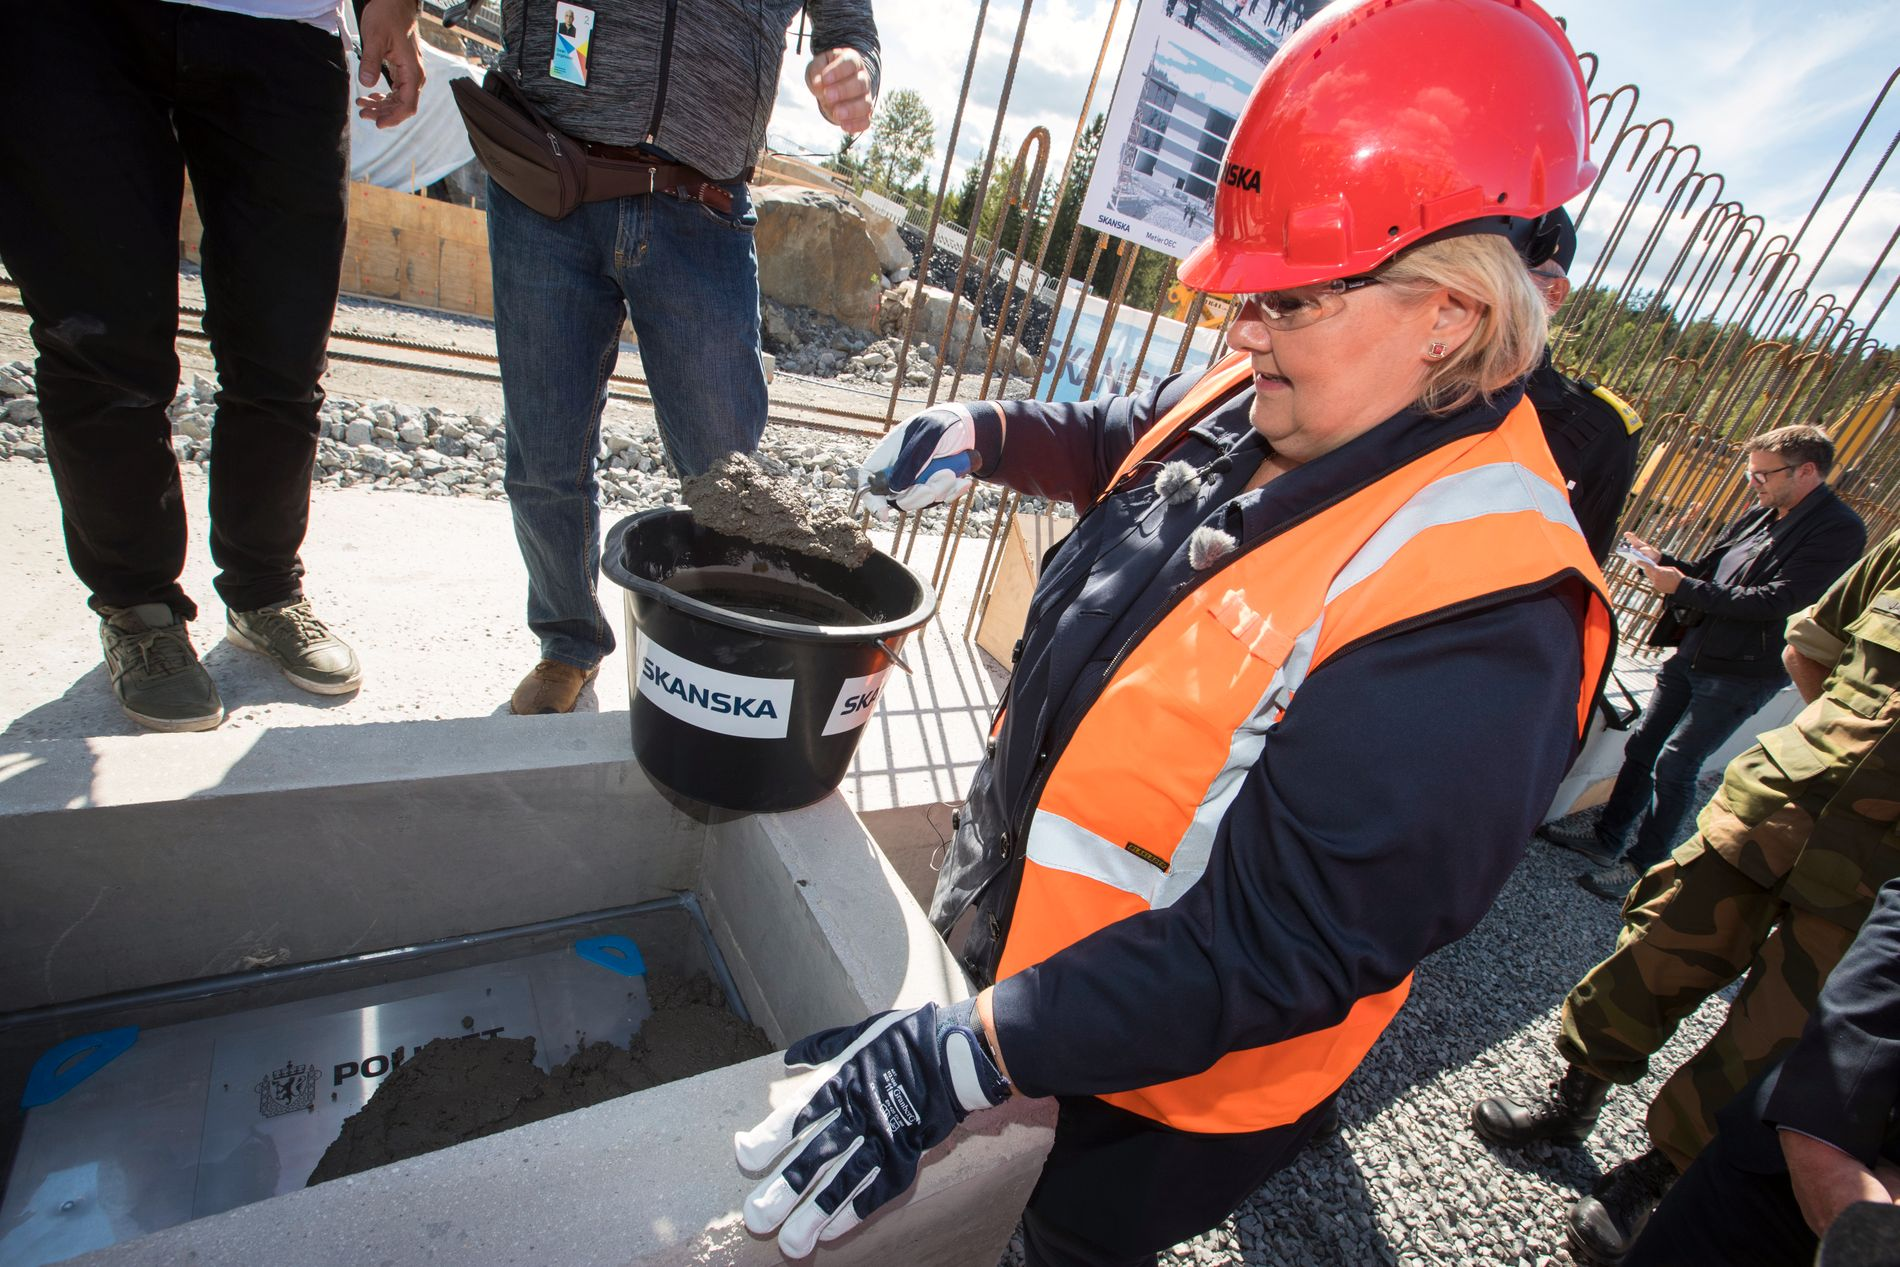 On Tuesday afternoon, Prime Minister Erna Solberg laid the foundation for the National Defense Center for Police in Taraldrud in Ski Municipality.